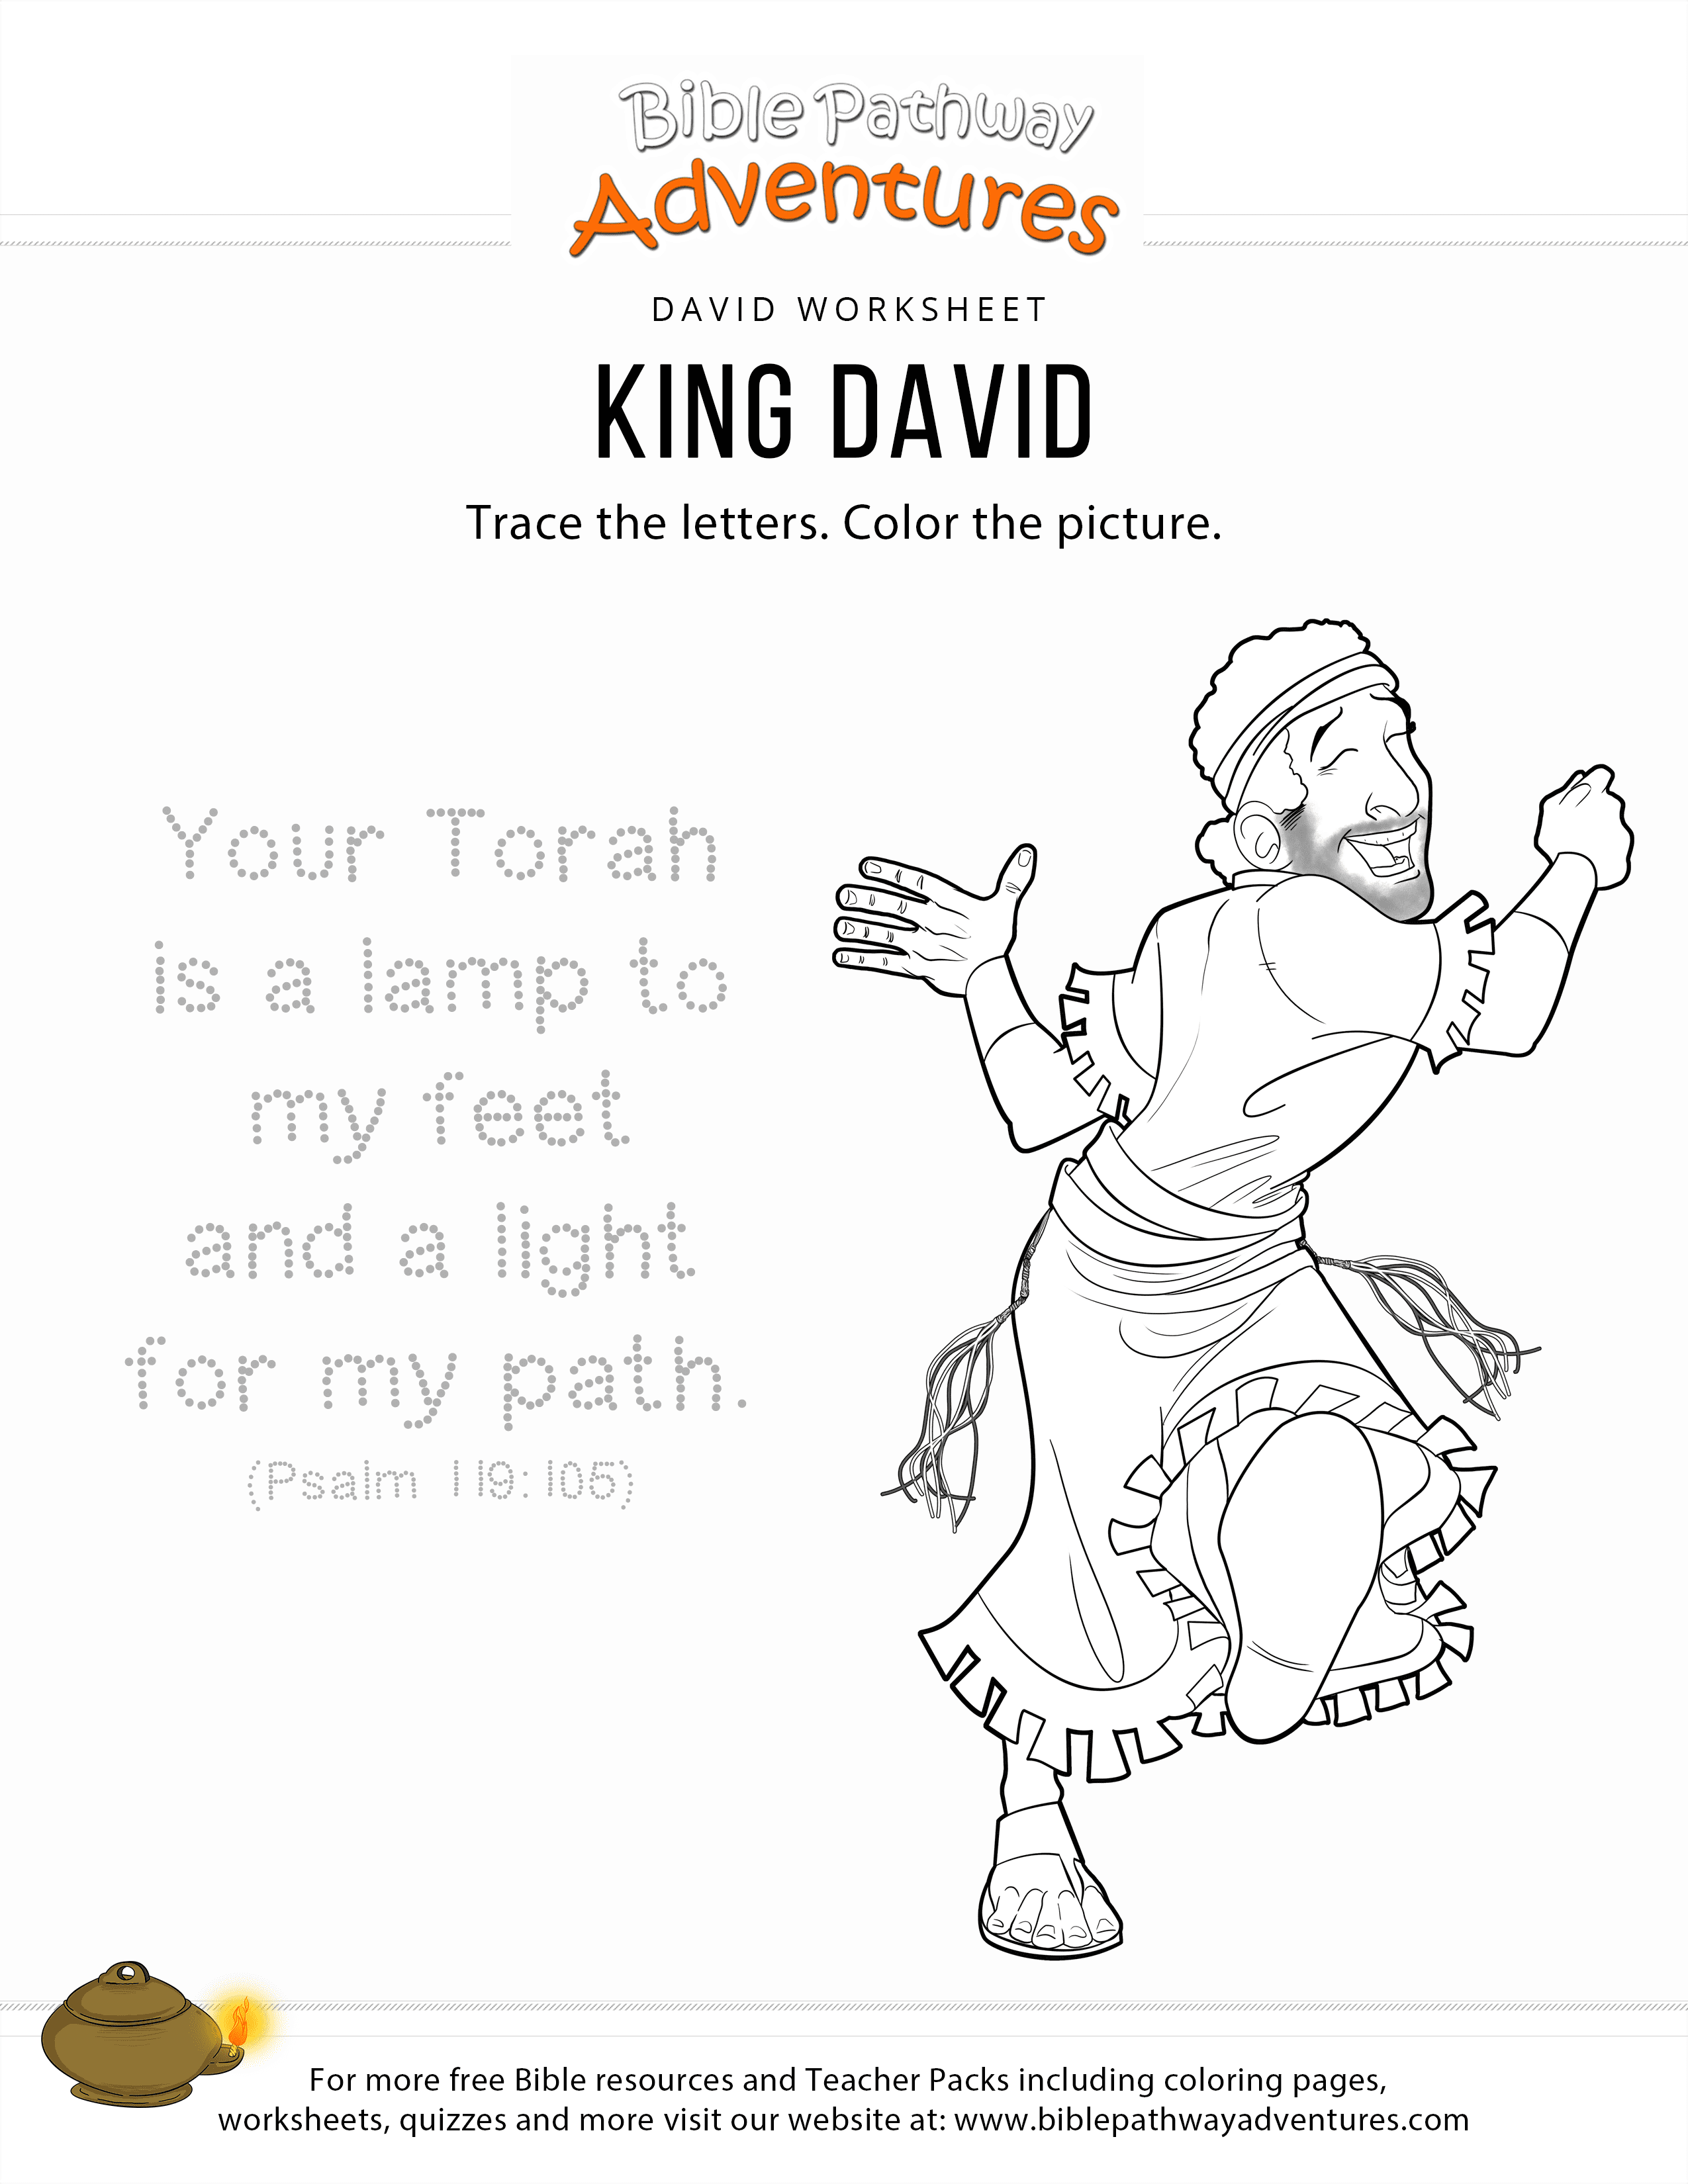 King David Copy And Coloring Page Bible Pathway Adventures